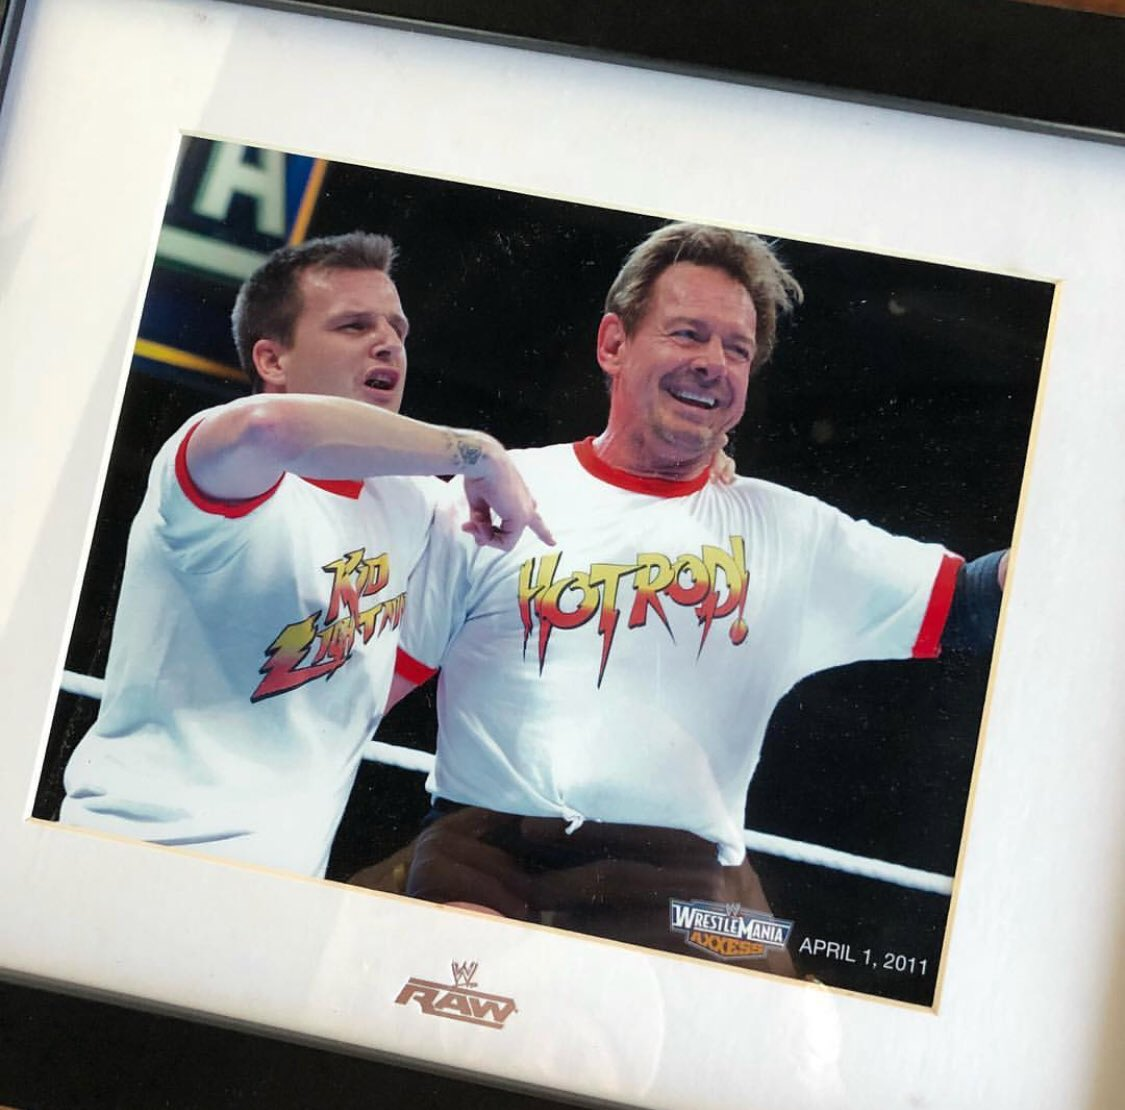 Just cleaning out some stuff at my office and found this gem. I still can't believe I  got  to wrestle with the legend Rowdy Roddy Piper. He was truly one of the coolest one of kind human beings I ever met. Truly grateful for him and the experience . #riphotrod #fantasyfactory